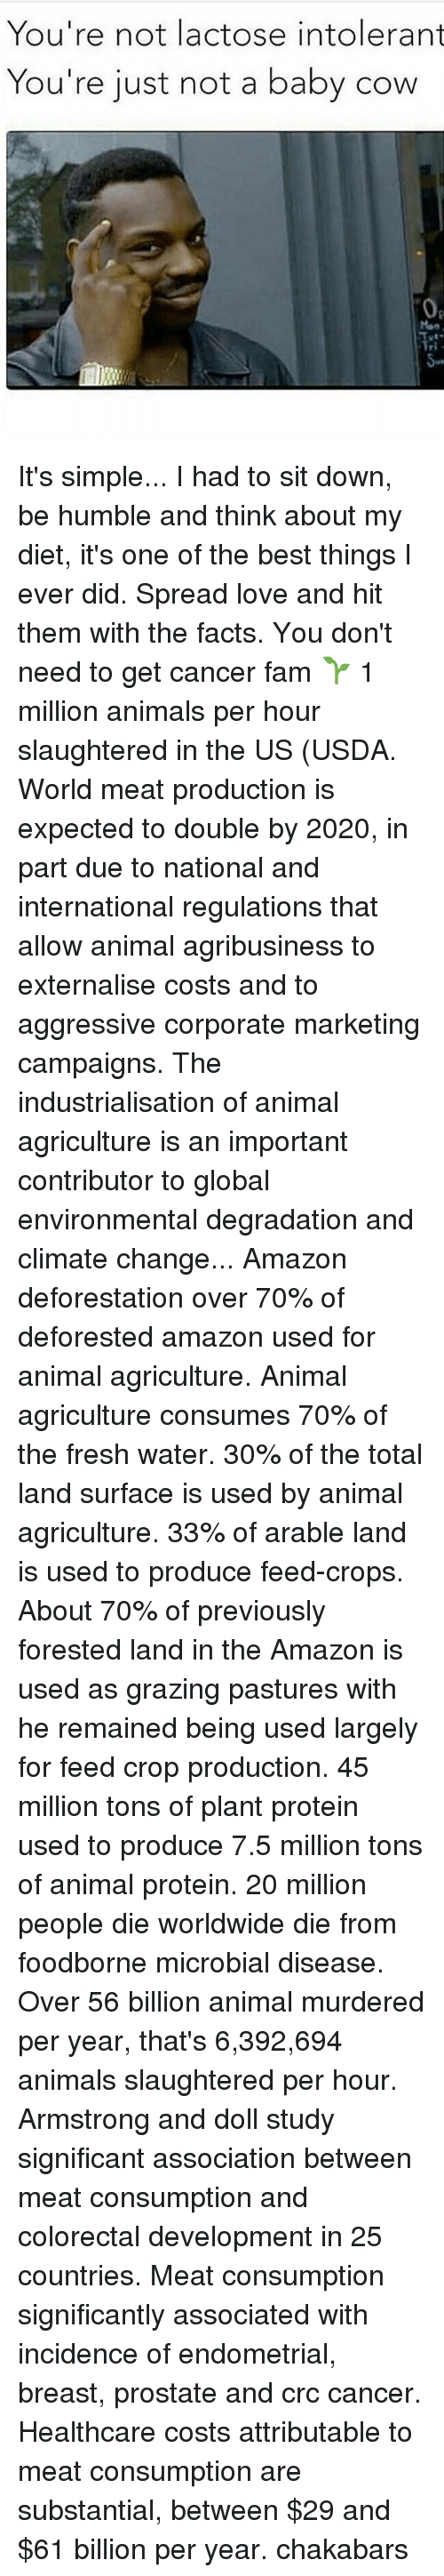 Cowe: You're not lactose intolerant  You're just not a baby cow  0a It's simple... I had to sit down, be humble and think about my diet, it's one of the best things I ever did. Spread love and hit them with the facts. You don't need to get cancer fam 🌱 1 million animals per hour slaughtered in the US (USDA. World meat production is expected to double by 2020, in part due to national and international regulations that allow animal agribusiness to externalise costs and to aggressive corporate marketing campaigns. The industrialisation of animal agriculture is an important contributor to global environmental degradation and climate change... Amazon deforestation over 70% of deforested amazon used for animal agriculture. Animal agriculture consumes 70% of the fresh water. 30% of the total land surface is used by animal agriculture. 33% of arable land is used to produce feed-crops. About 70% of previously forested land in the Amazon is used as grazing pastures with he remained being used largely for feed crop production. 45 million tons of plant protein used to produce 7.5 million tons of animal protein. 20 million people die worldwide die from foodborne microbial disease. Over 56 billion animal murdered per year, that's 6,392,694 animals slaughtered per hour. Armstrong and doll study significant association between meat consumption and colorectal development in 25 countries. Meat consumption significantly associated with incidence of endometrial, breast, prostate and crc cancer. Healthcare costs attributable to meat consumption are substantial, between $29 and $61 billion per year. chakabars